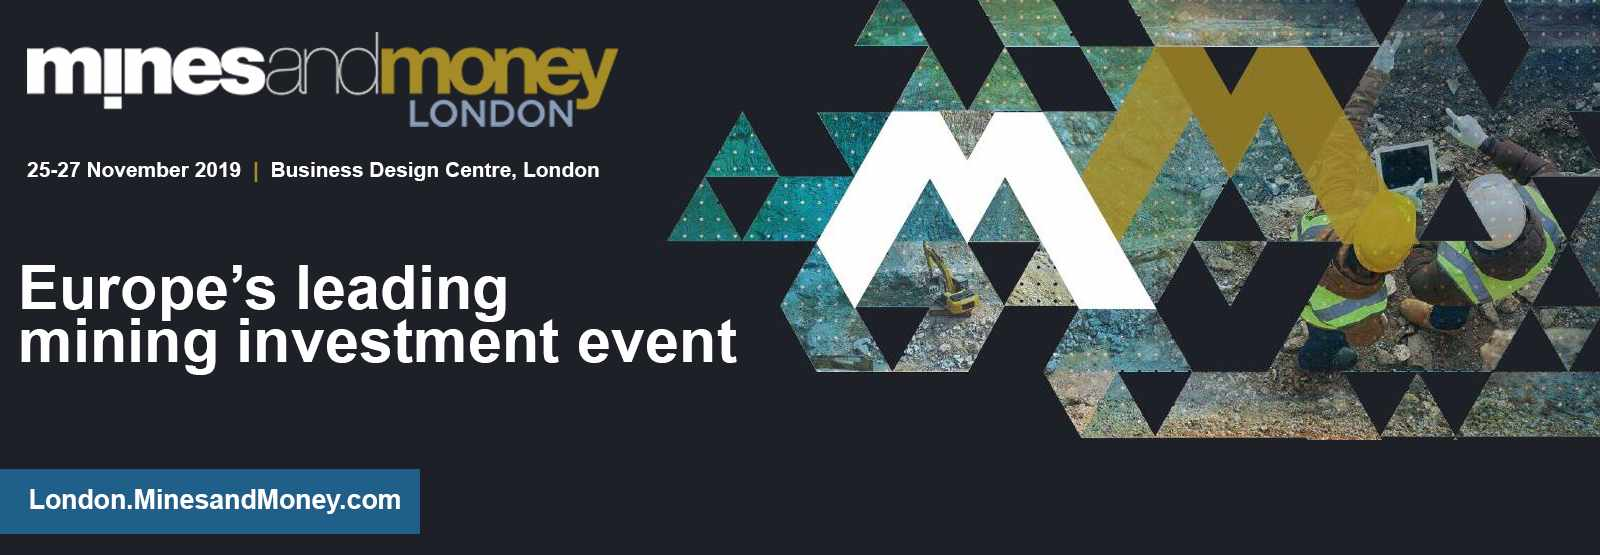 https://london.minesandmoney.com/